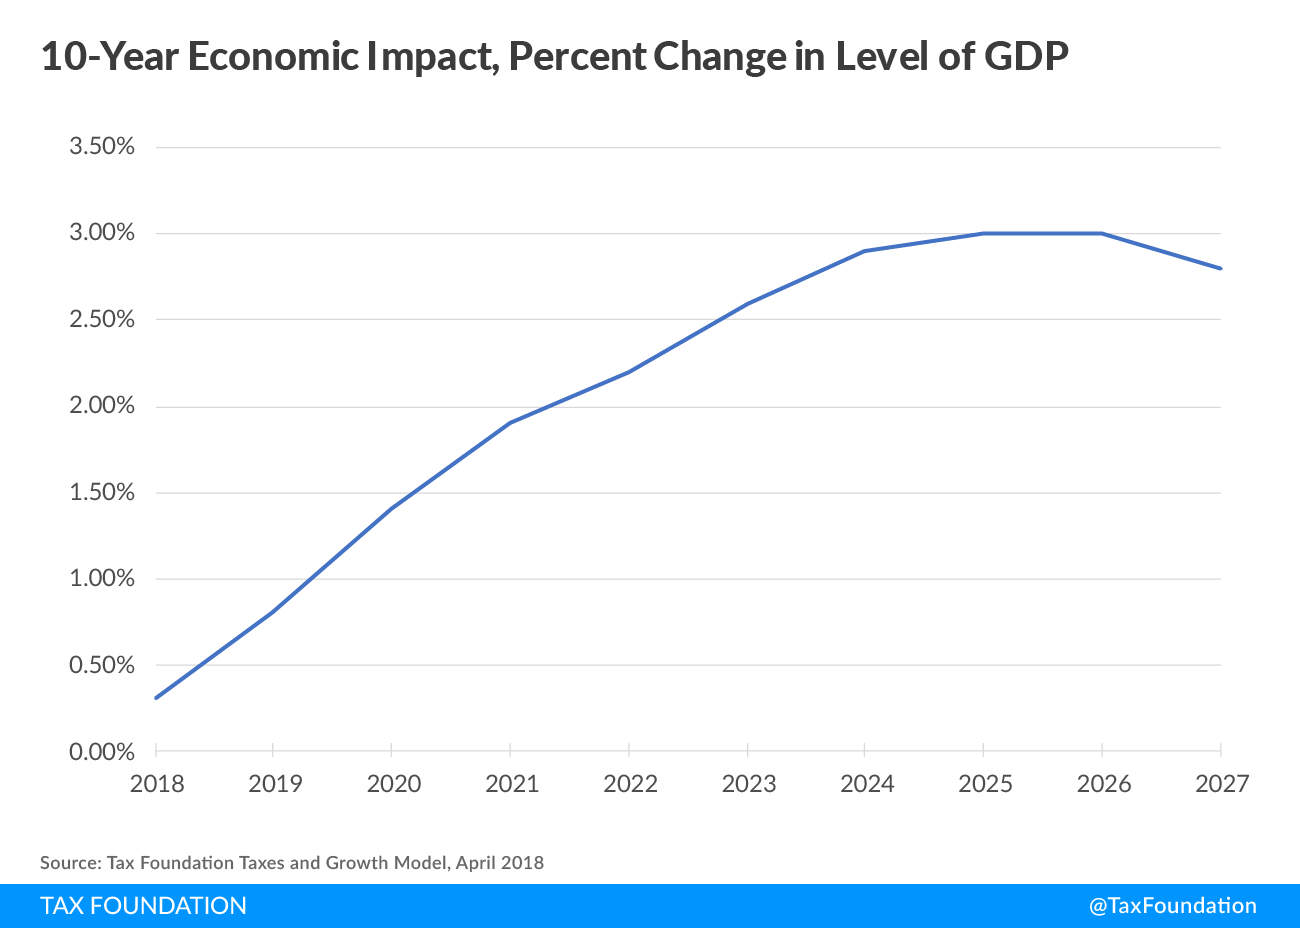 10-year economic impact, percent change in level of GDP